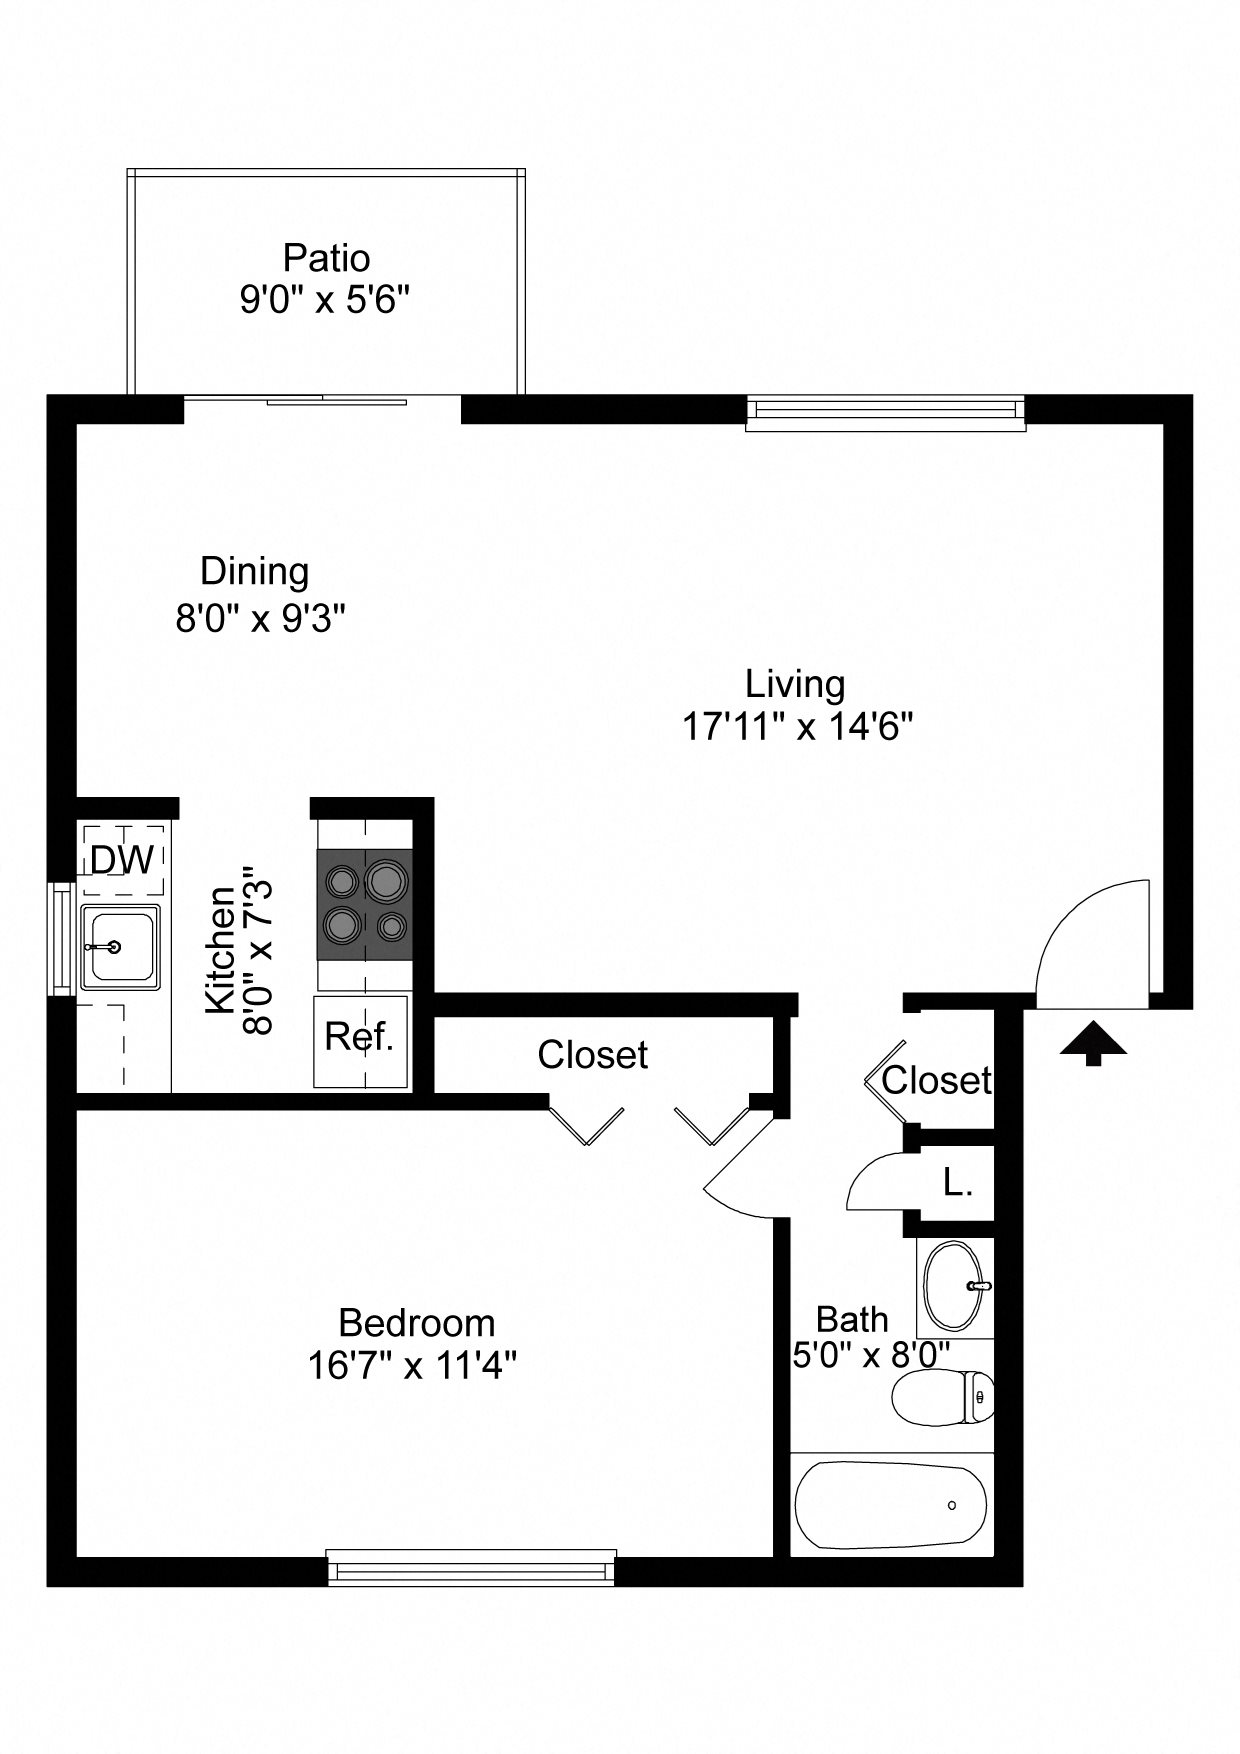 1 Bedroom Apartment Floor Plan 2